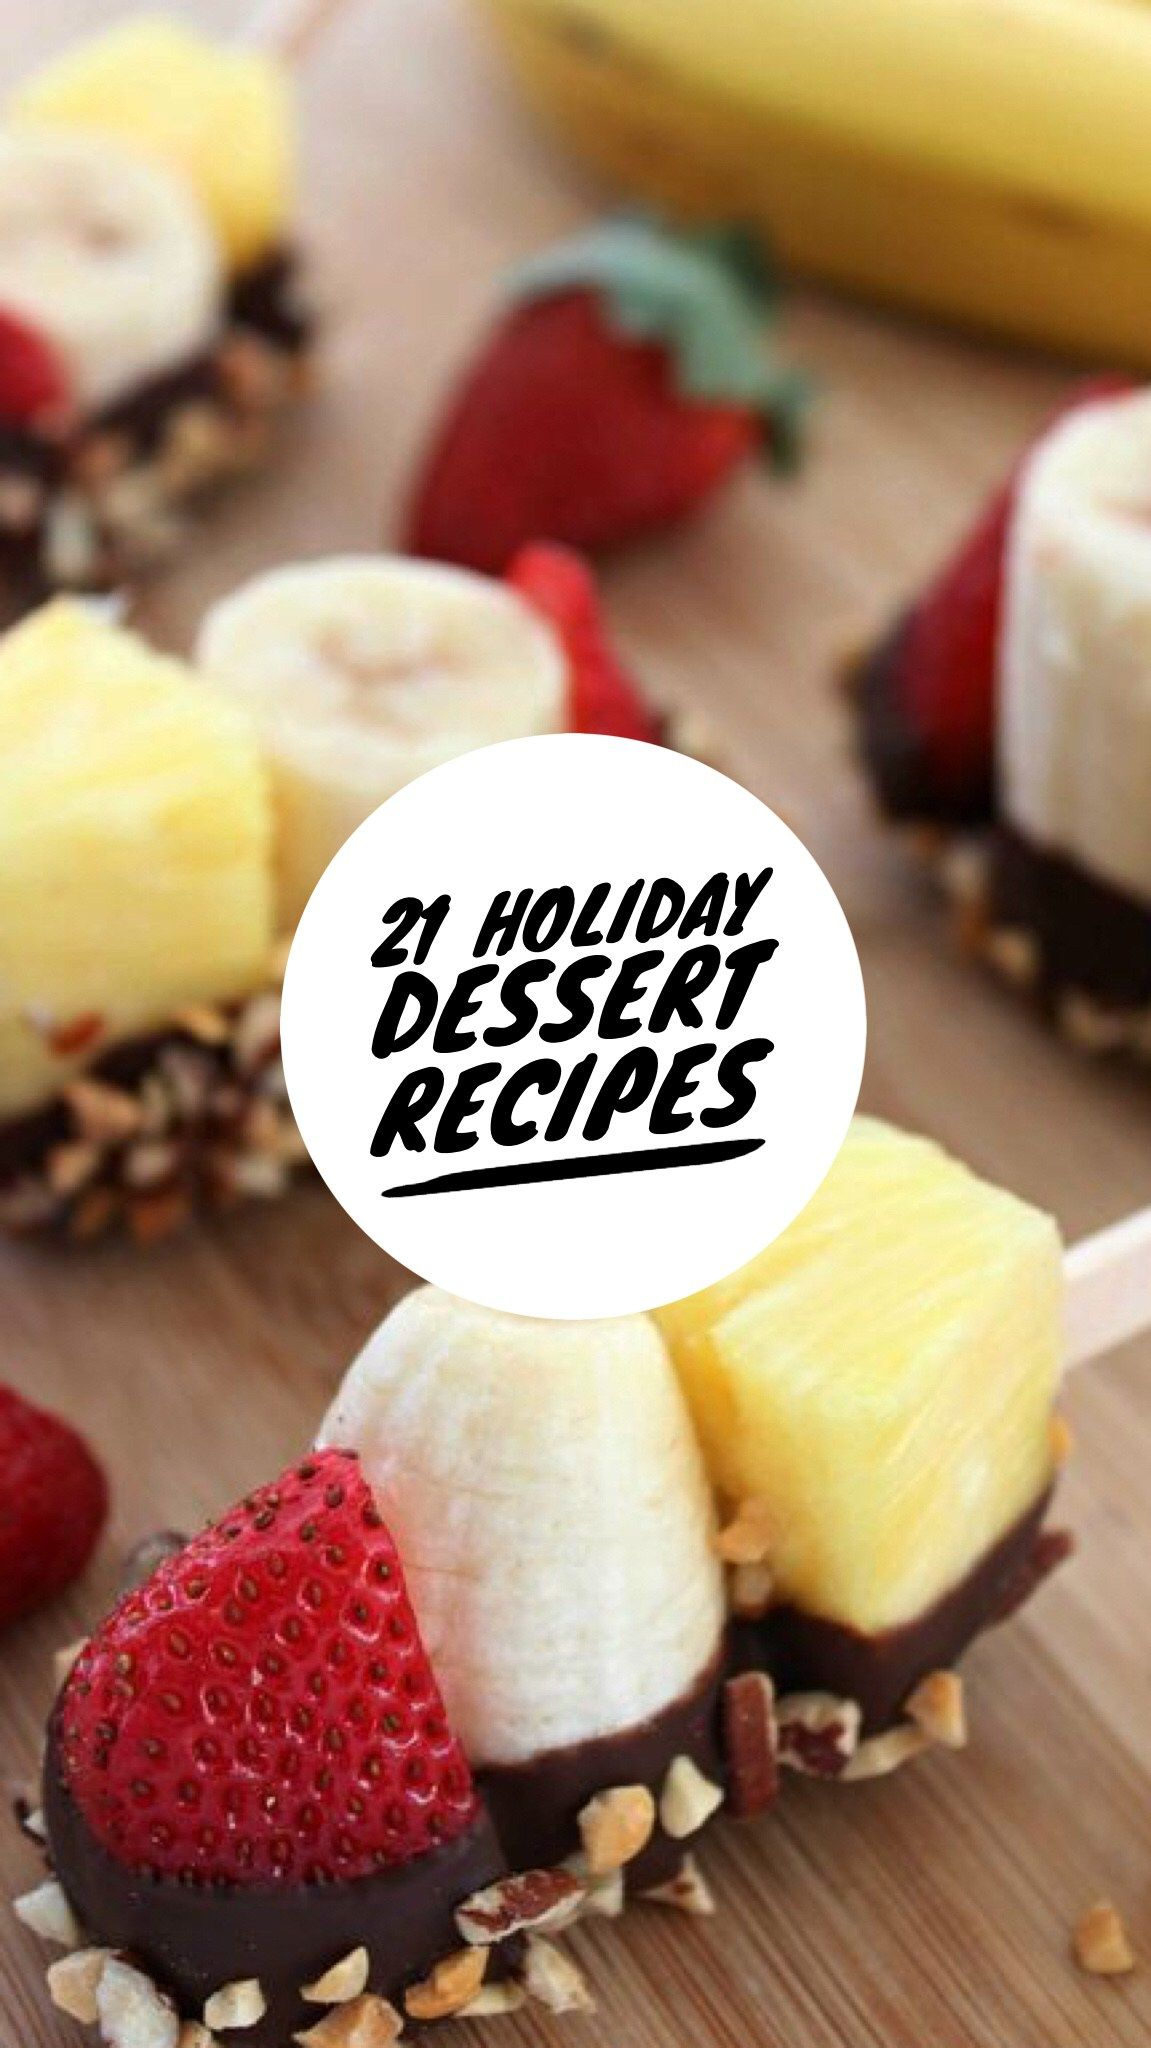 Healthy Dessert Options For The Holidays advise